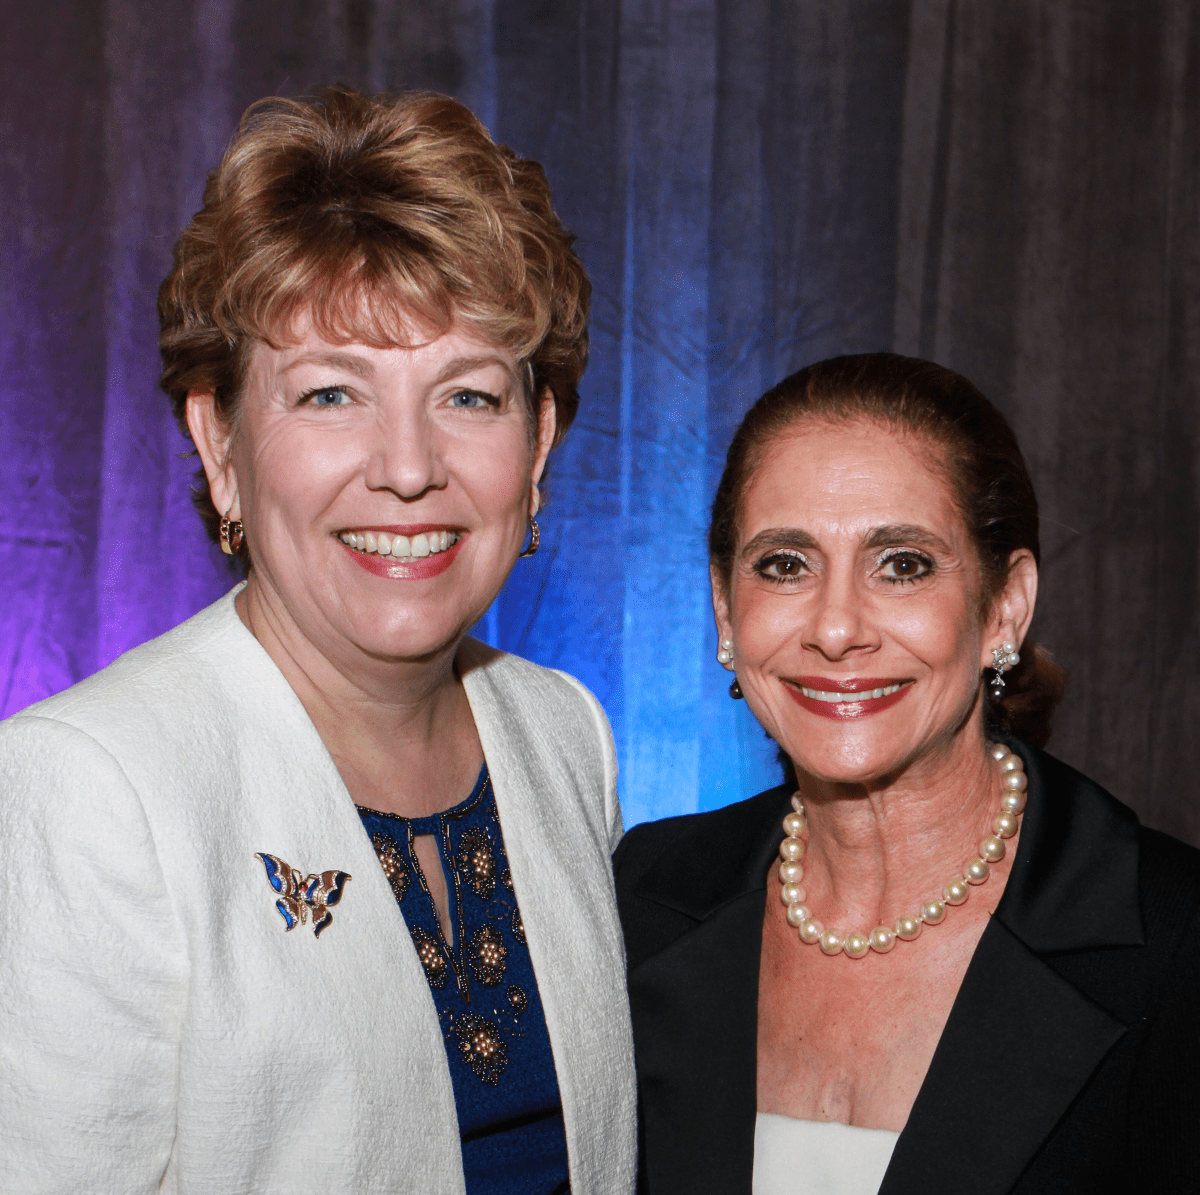 News, Shelby, Holocaust museum luncheon, Nov. 2015, Kelly Zuniga, Gail Klein